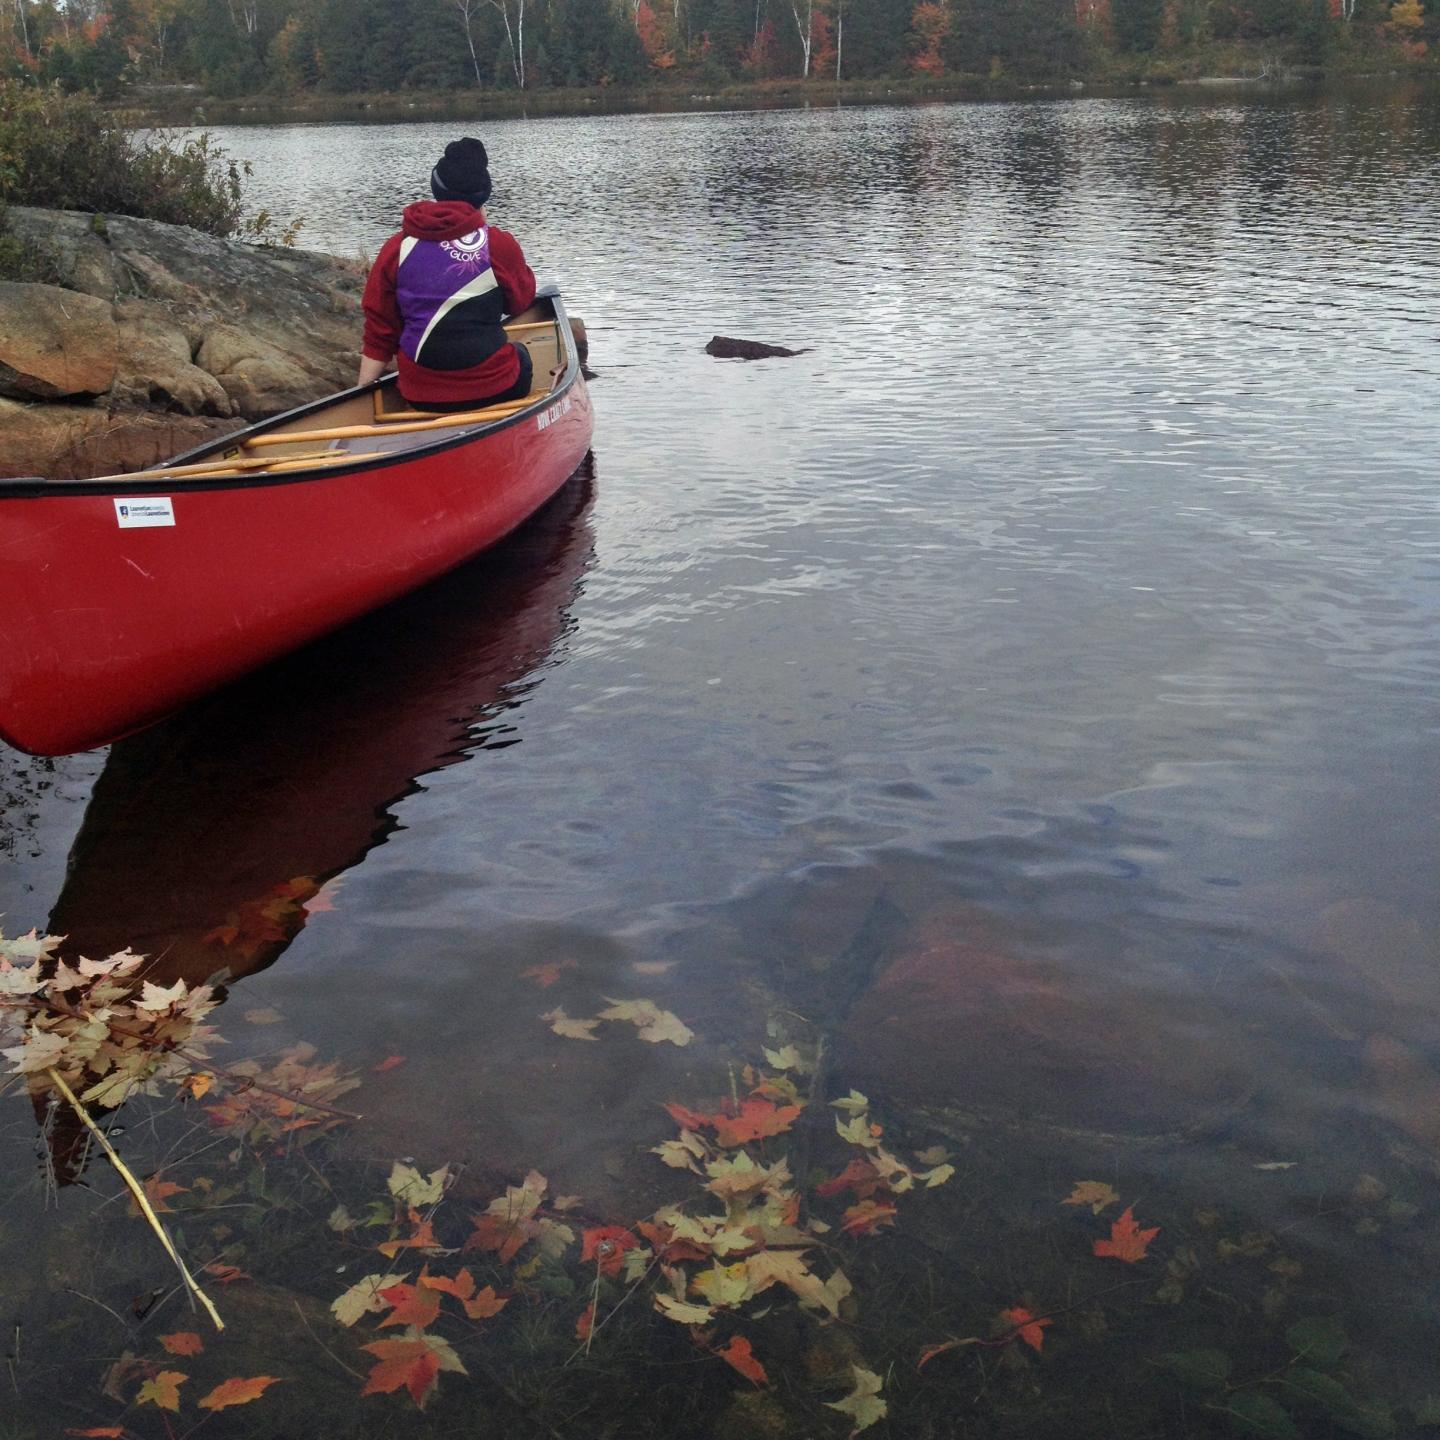 Leaves Accumulated in Lake with Canoe